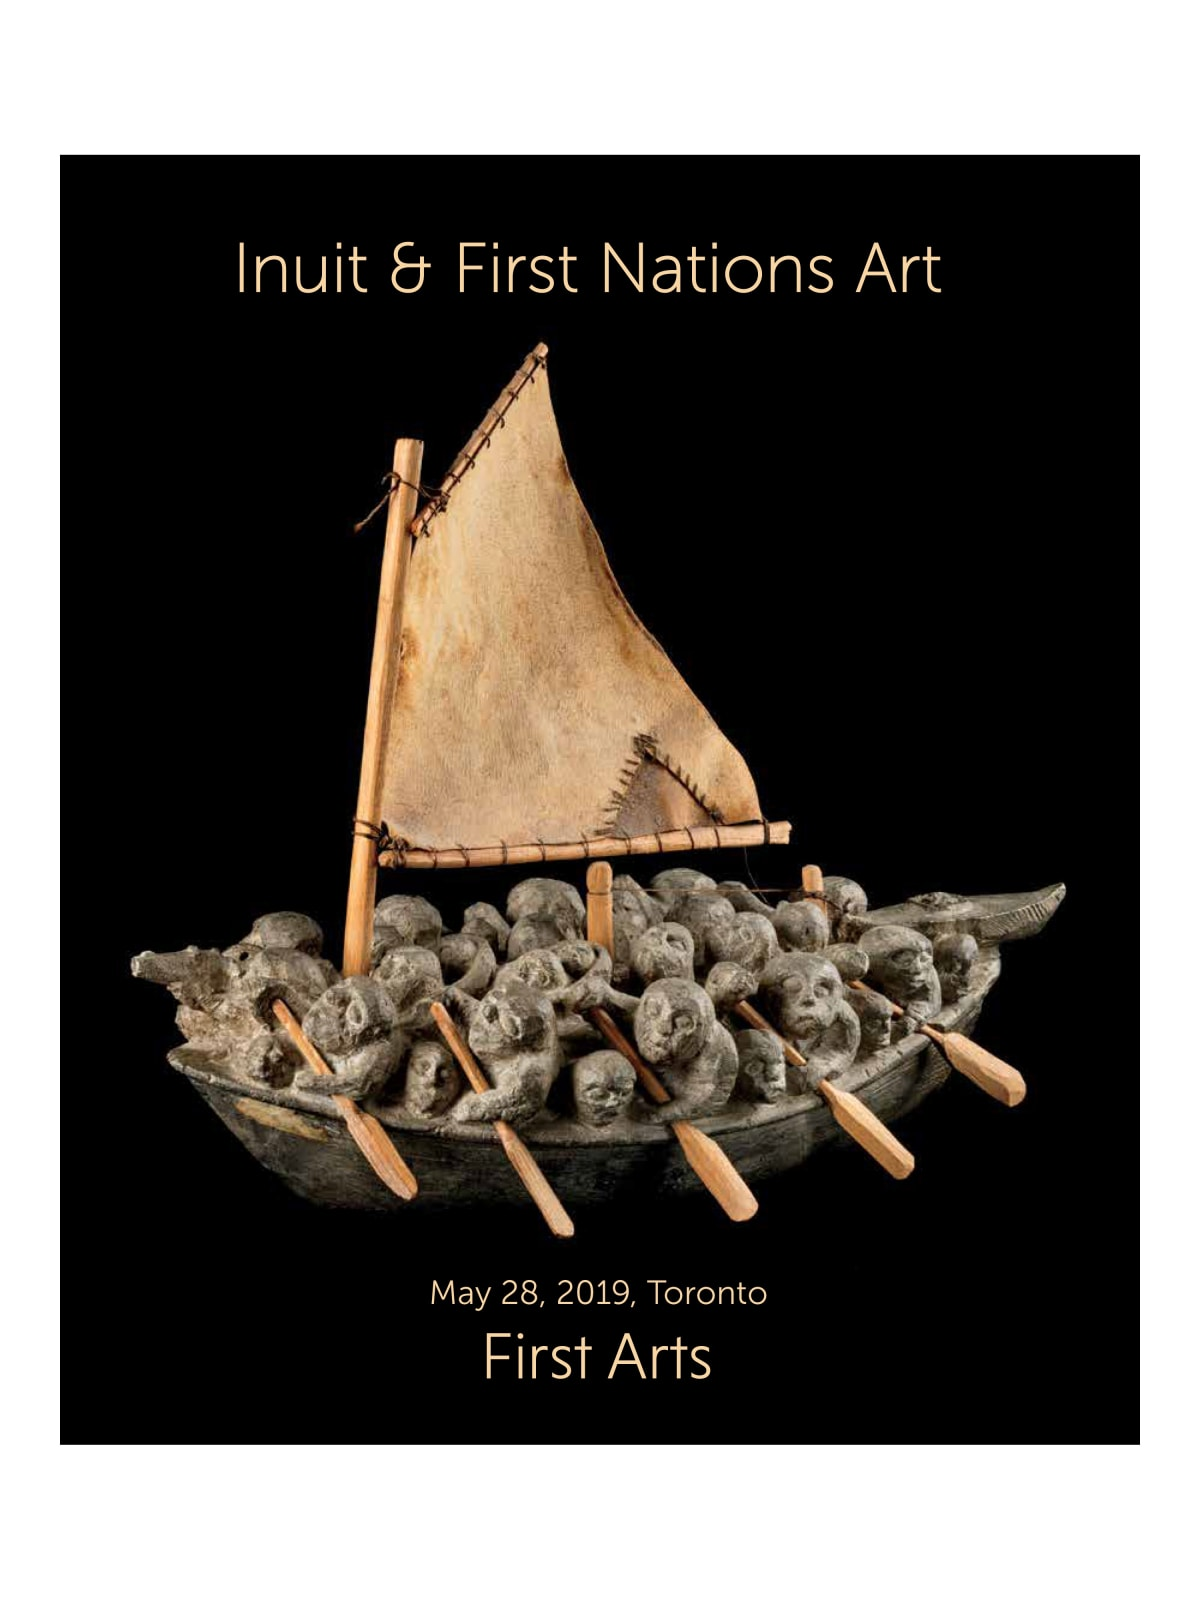 Inuit & First Nations Art